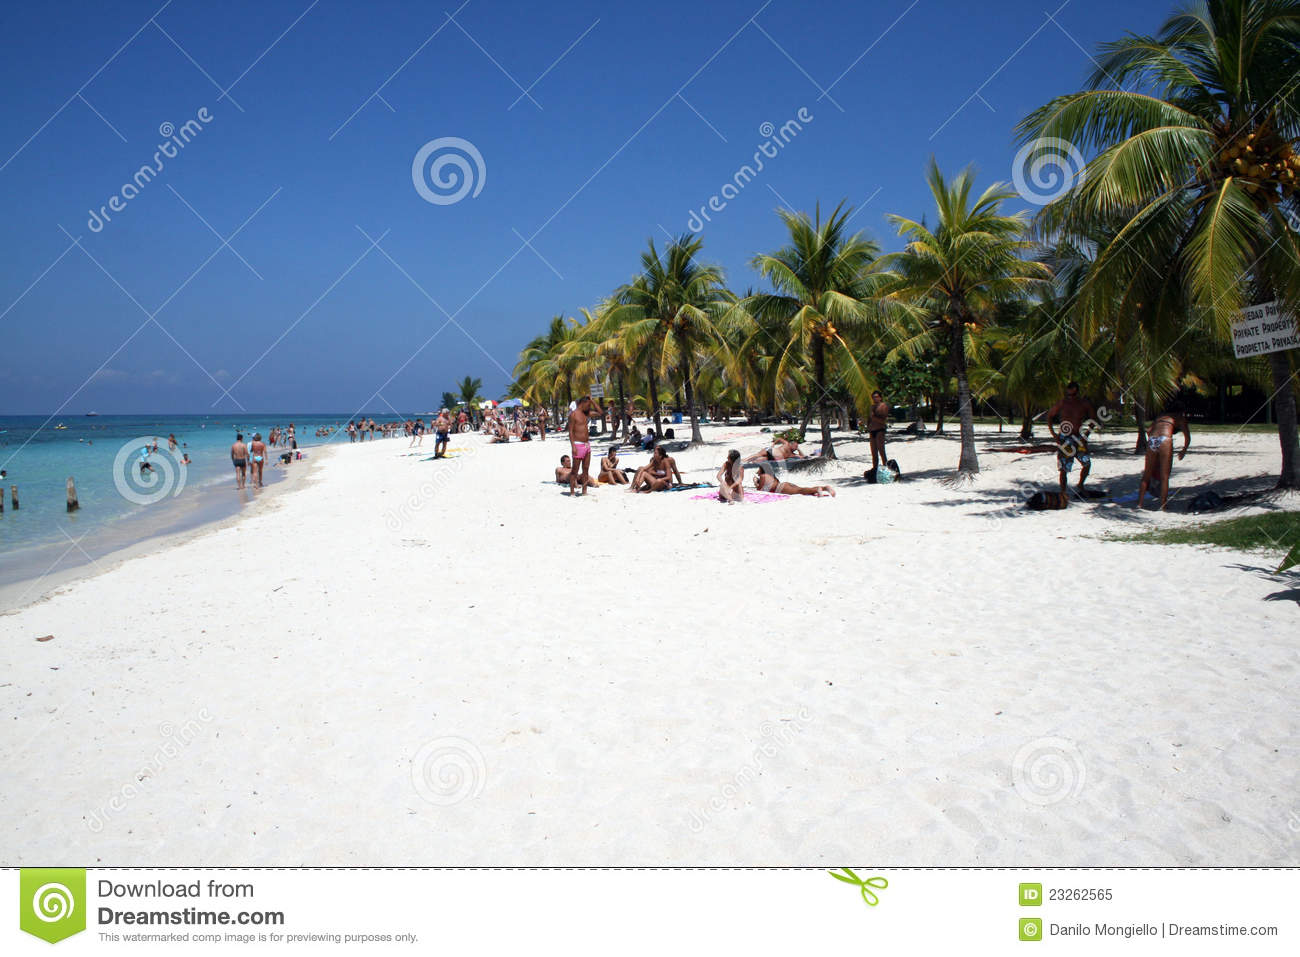 Royalty Free Stock Image Z Ocean Hotel South Beach Image28628286 in addition Selliner seebruecke furthermore Stock Illustration Illustration Happy Sunny Summer Day Beach Stock Vector Hammock Island Bright Sun Palm Trees Flat Image71805830 further Royalty Free Stock Photo Tabyana Beach Image23262565 also Atlantis Palm Dubai. on palm beach style architecture